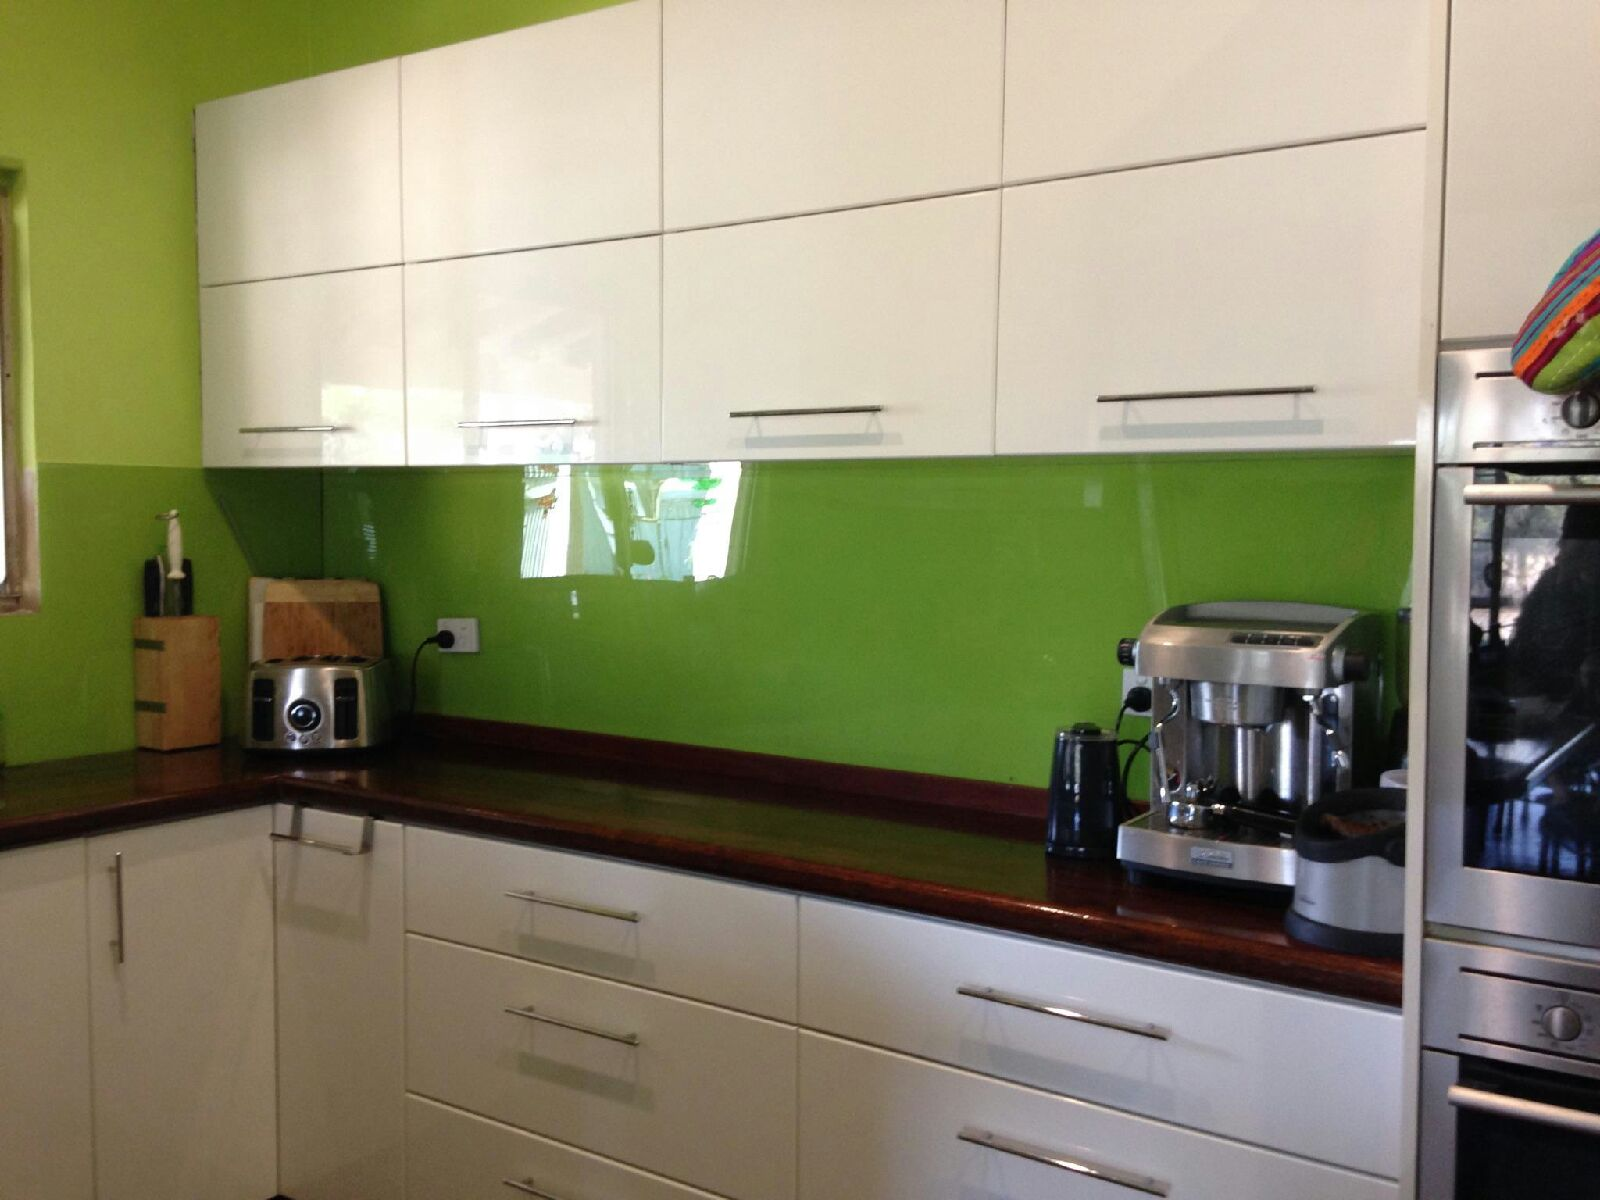 back splash kitchen renovation ideas html with Acrylic Splashback Bo Hane Premium on Unique Kitchen Backsplash Ideas also Storey Furniture as well 3 additionally Acrylic Splashback Bo hane Premium as well Whats A Good Highlighter Makeup Over The Counter.